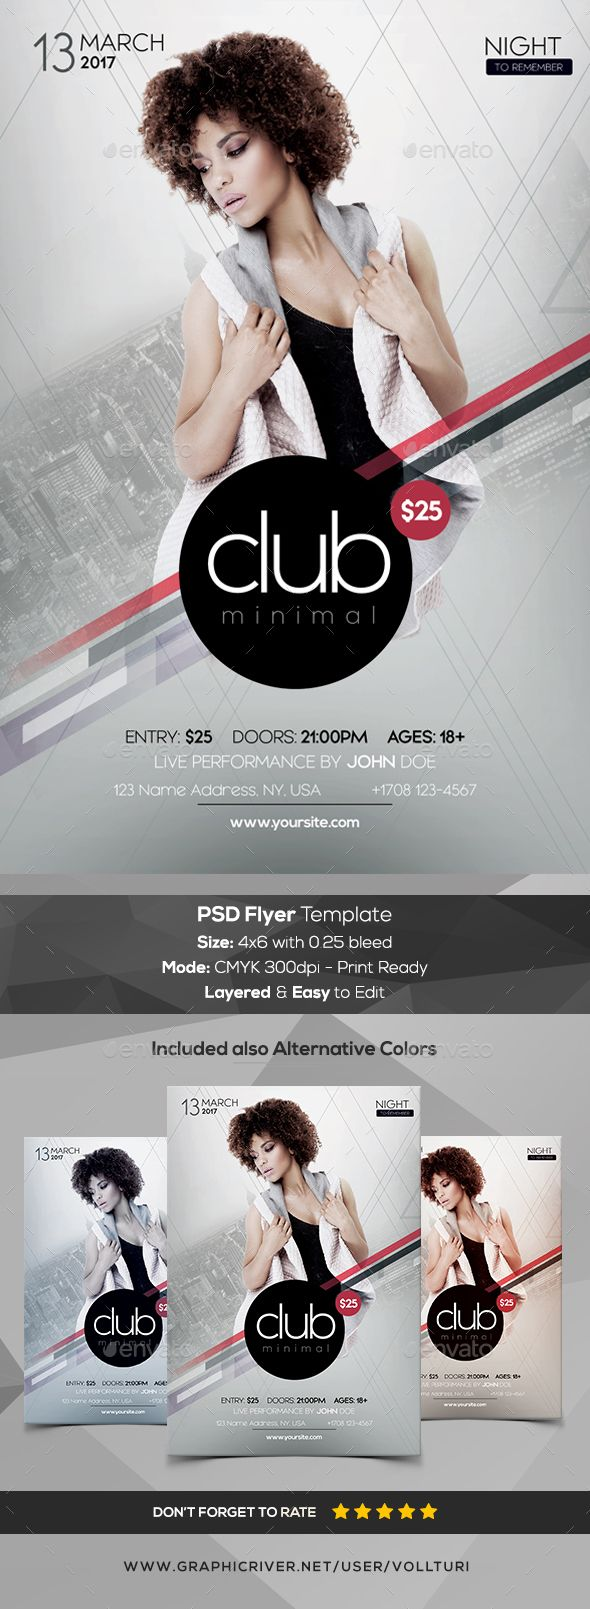 Club Minimal  Psd Flyer Template  Psd Flyer Templates Flyer